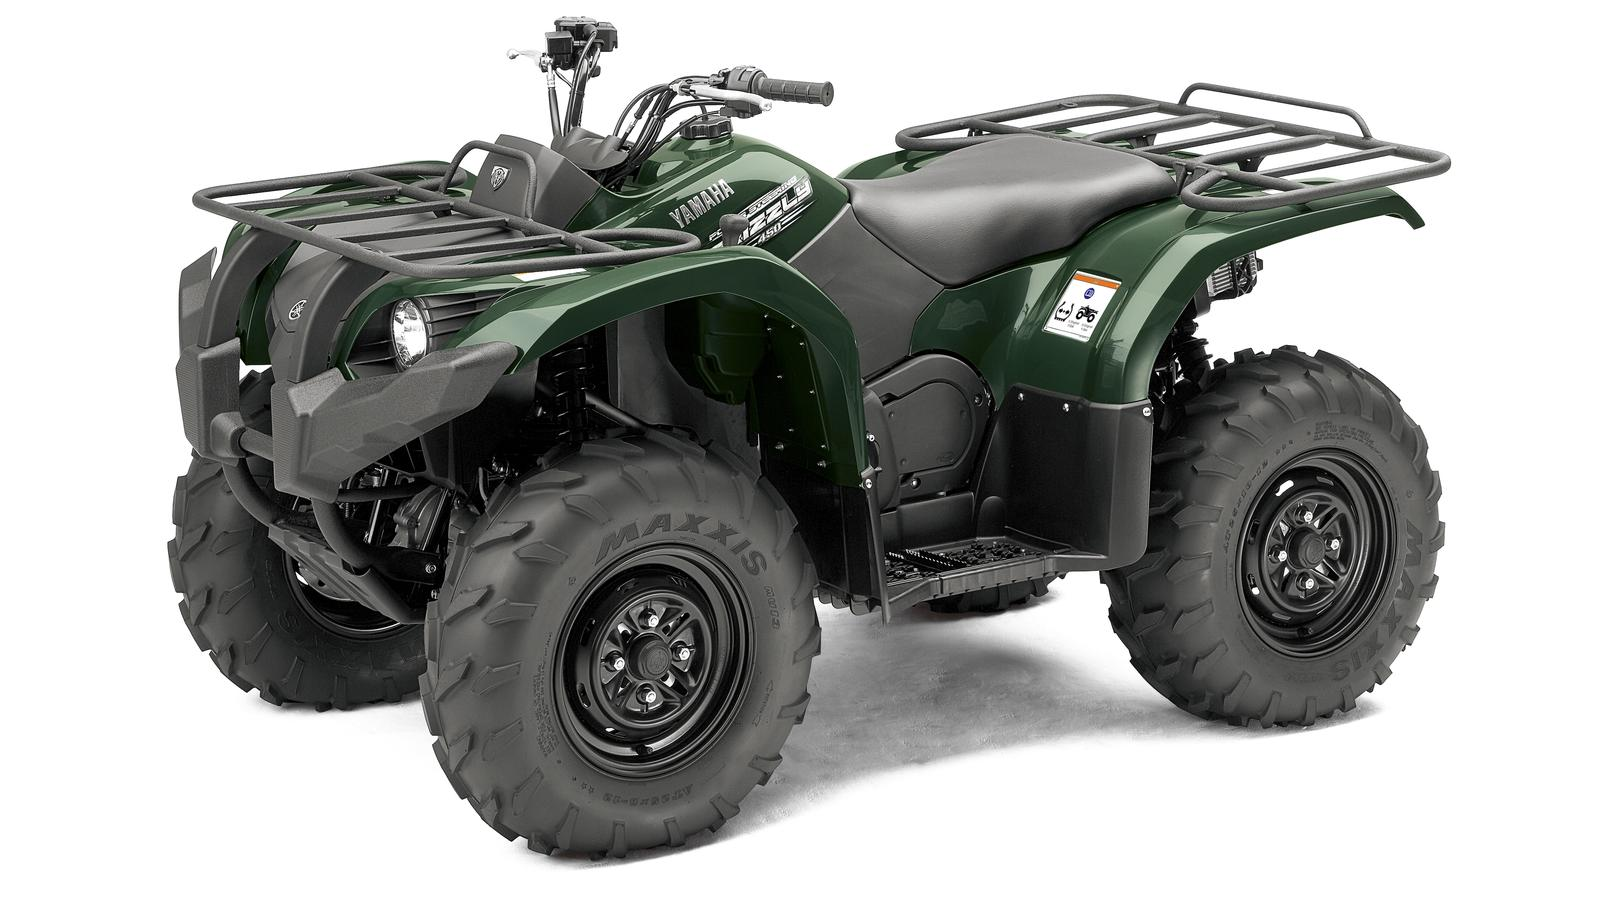 YAMAHA Grizzly 450  2011 photo 3